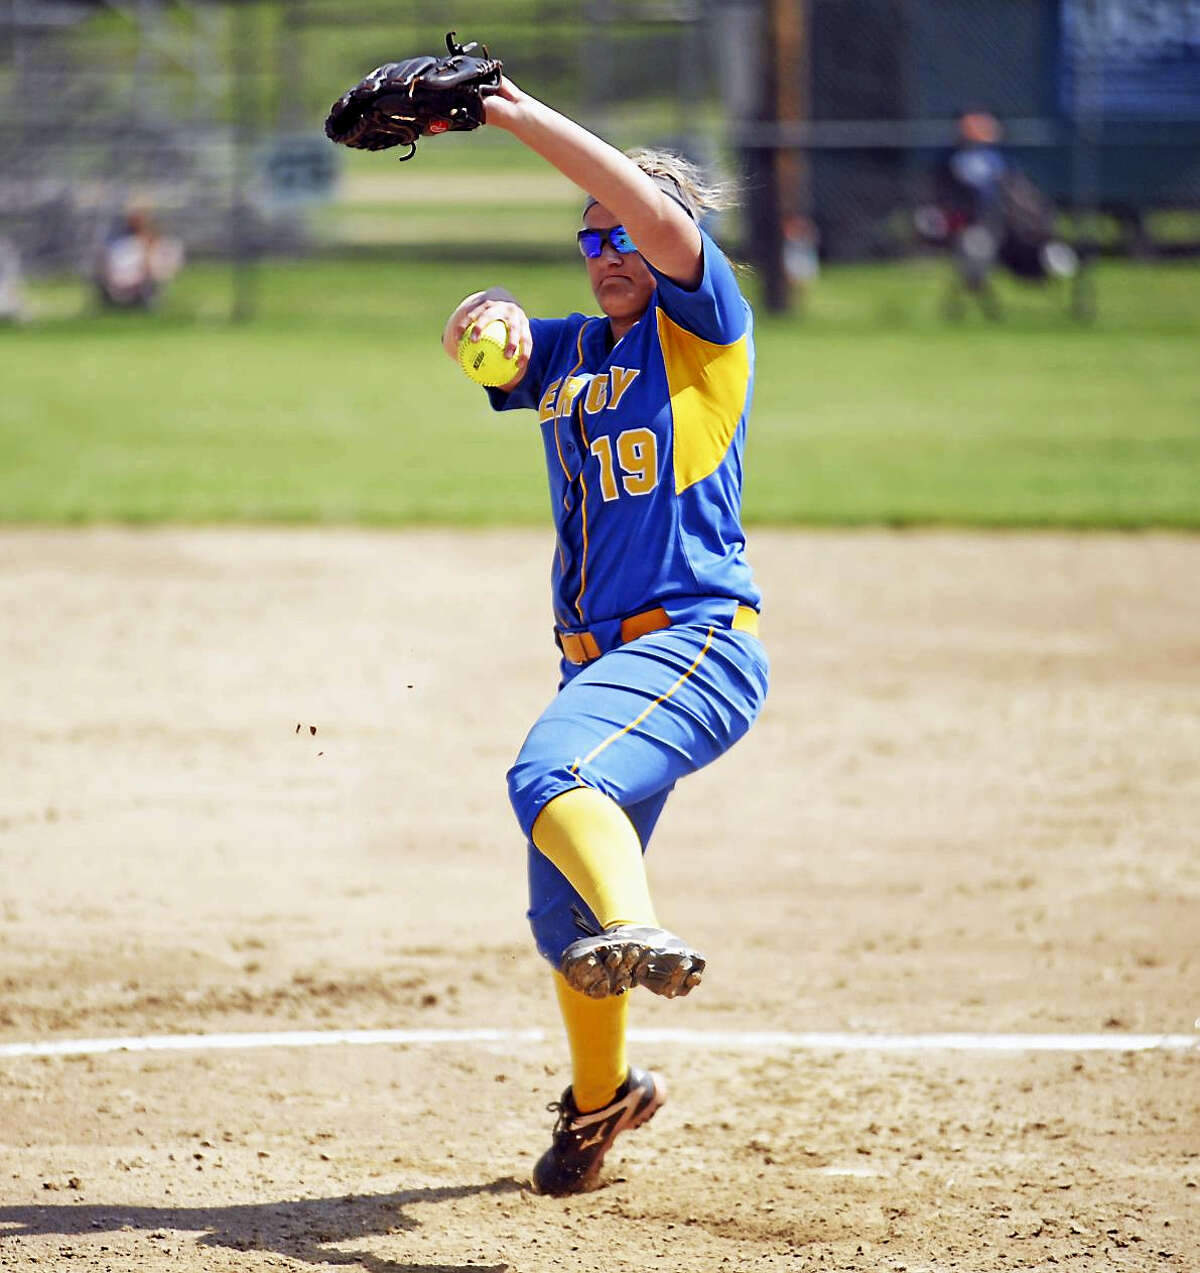 Jimmy Zanor - The Middletown PressMiddletown senior Bri Sawicki fires a pitch against Fitch on Thursday at Washington Park in Groton.